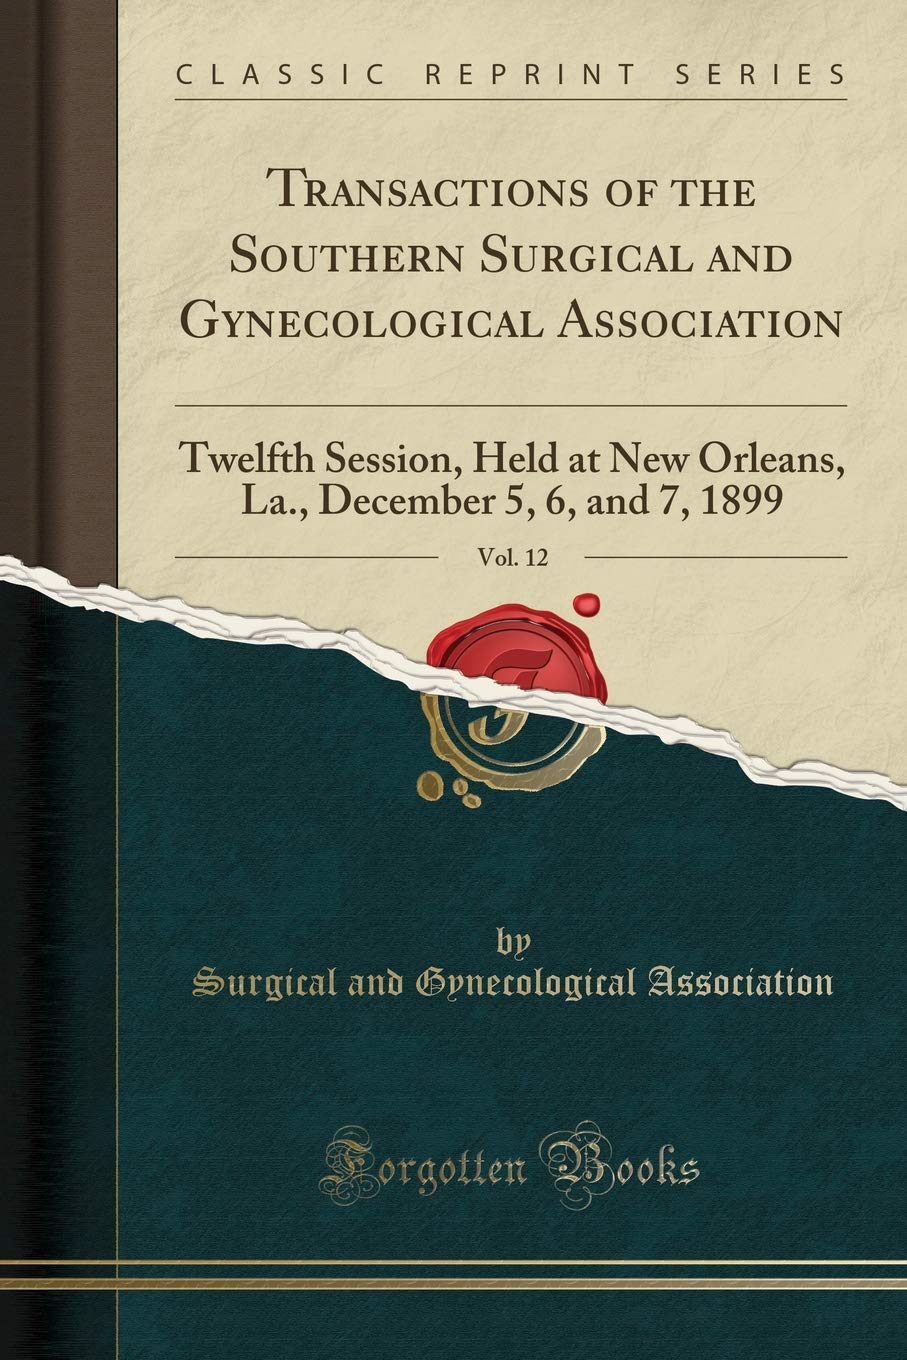 Transactions of the Southern Surgical and Gynecological Association, Vol. 12: Twelfth Session, Held at New Orleans, La., December 5, 6, and 7, 1899 (Classic Reprint) by Forgotten Books